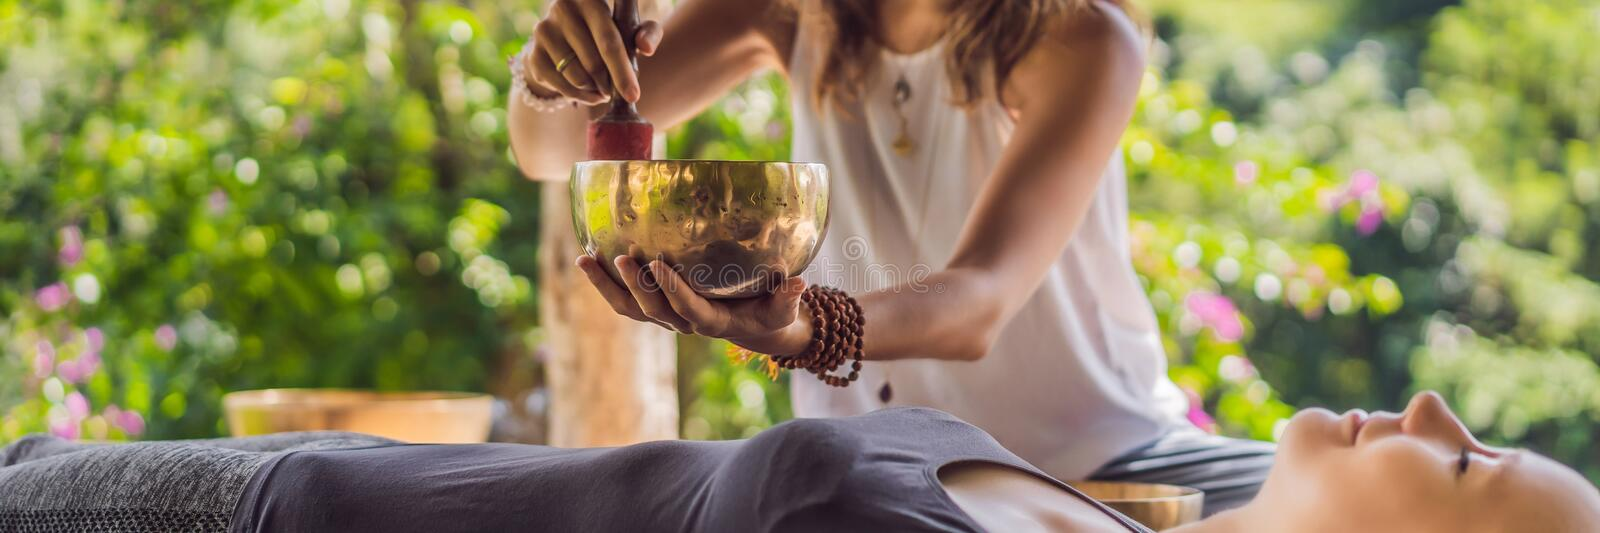 BANNER, LONG FORMAT Nepal Buddha copper singing bowl at spa salon. Young beautiful woman doing massage therapy singing. BANNER, LONG FORMAT Nepal Buddha copper royalty free stock photo